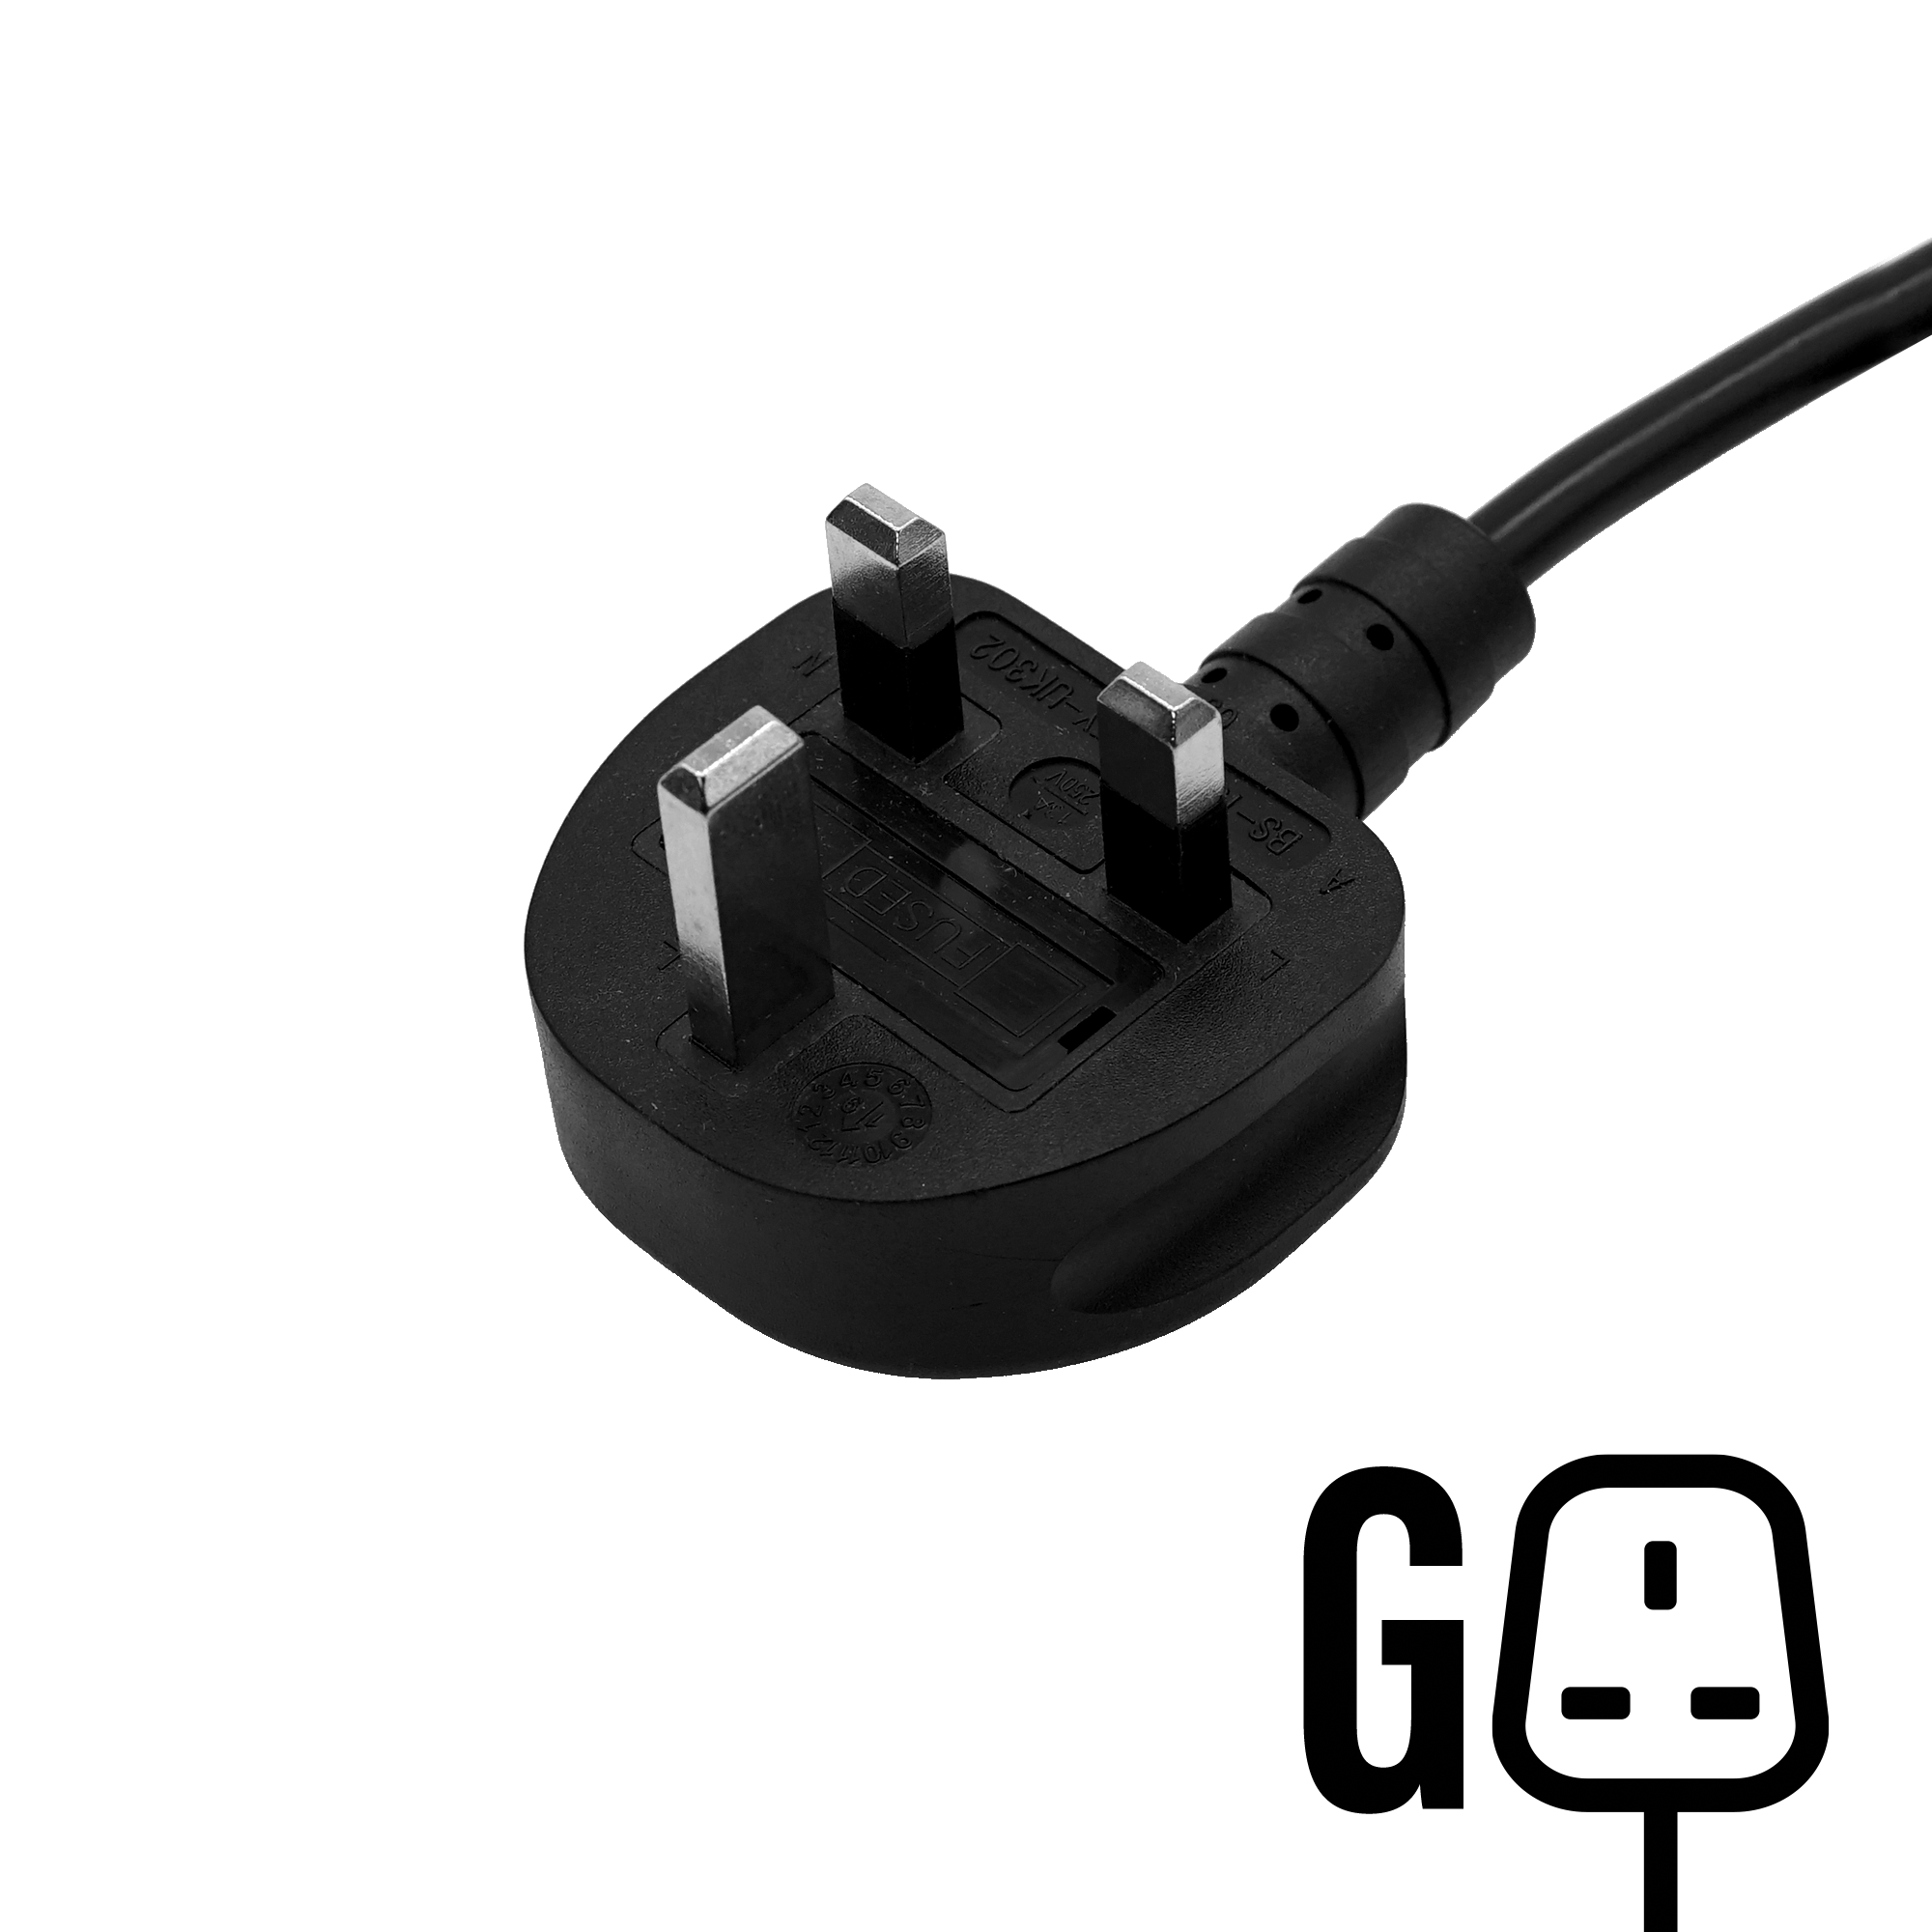 Hover Type-G International Power Cord